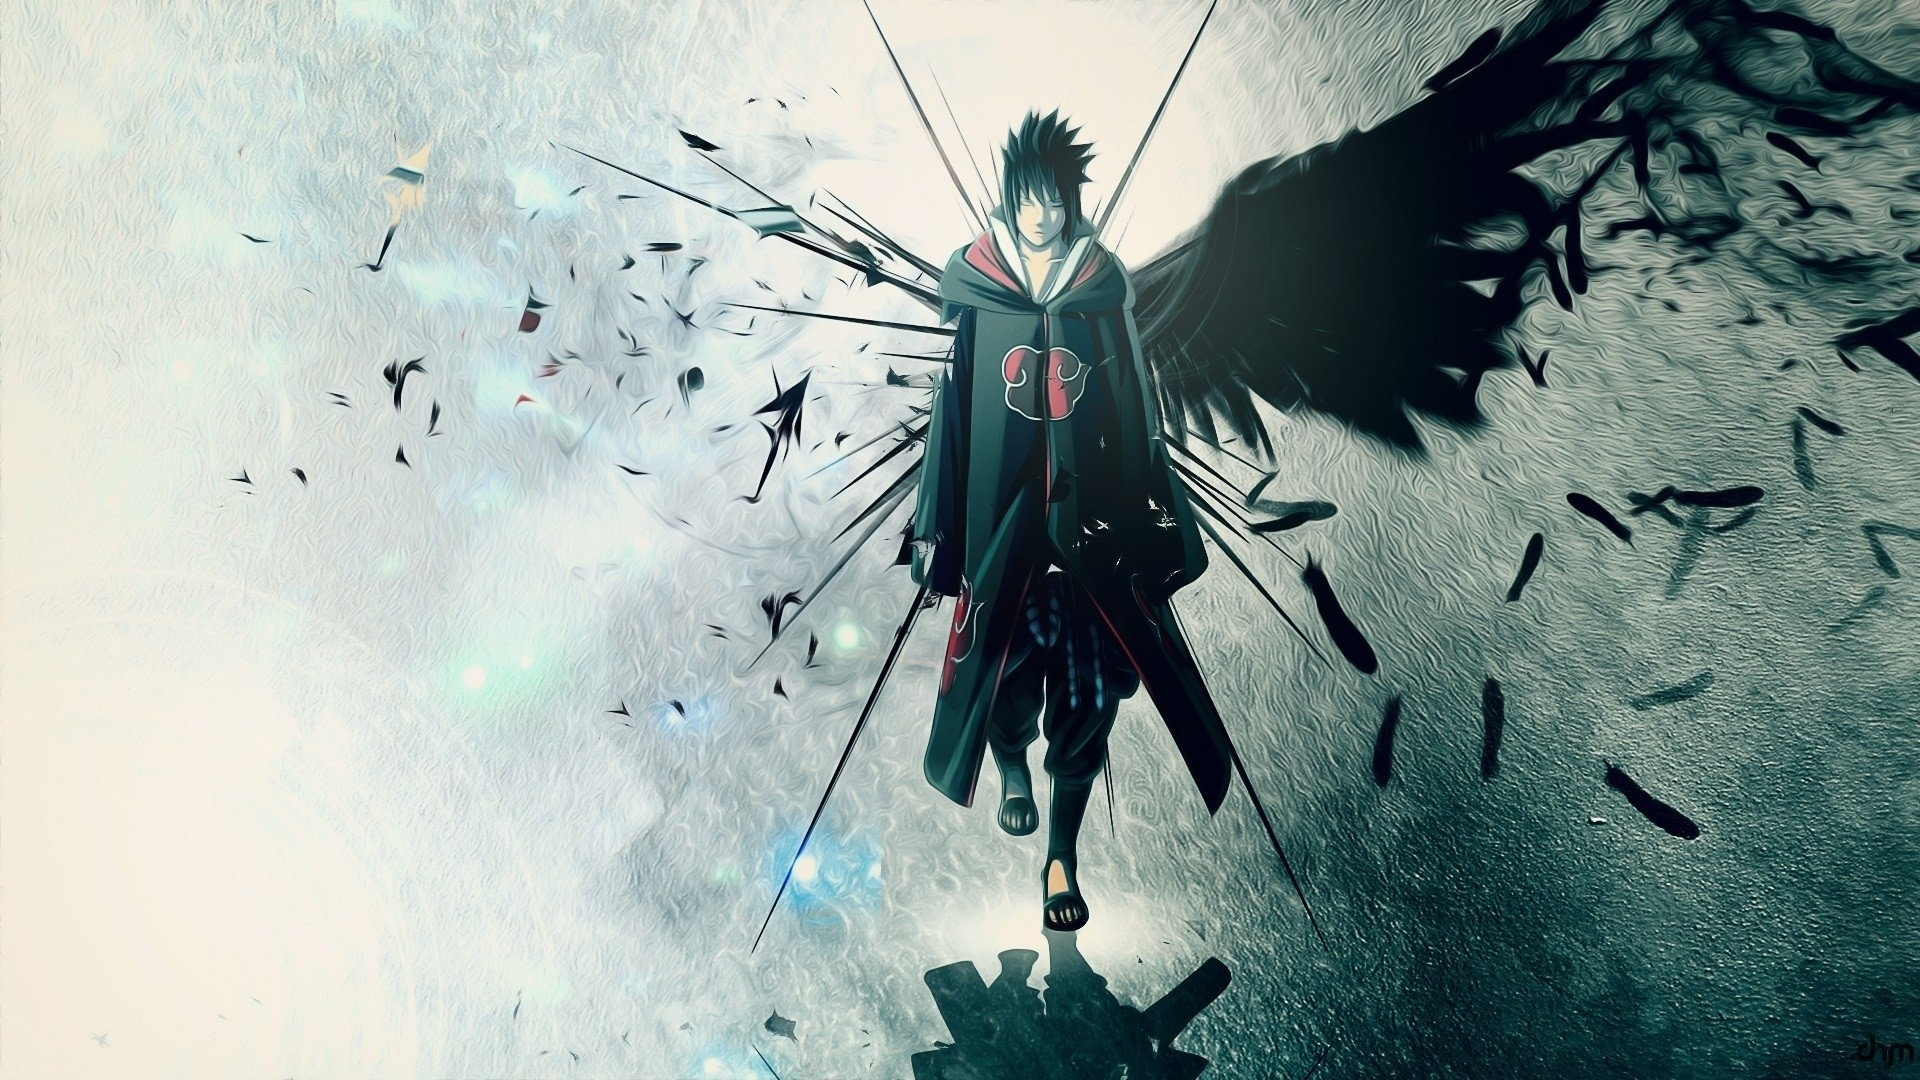 613 sasuke uchiha hd wallpapers | background images - wallpaper abyss